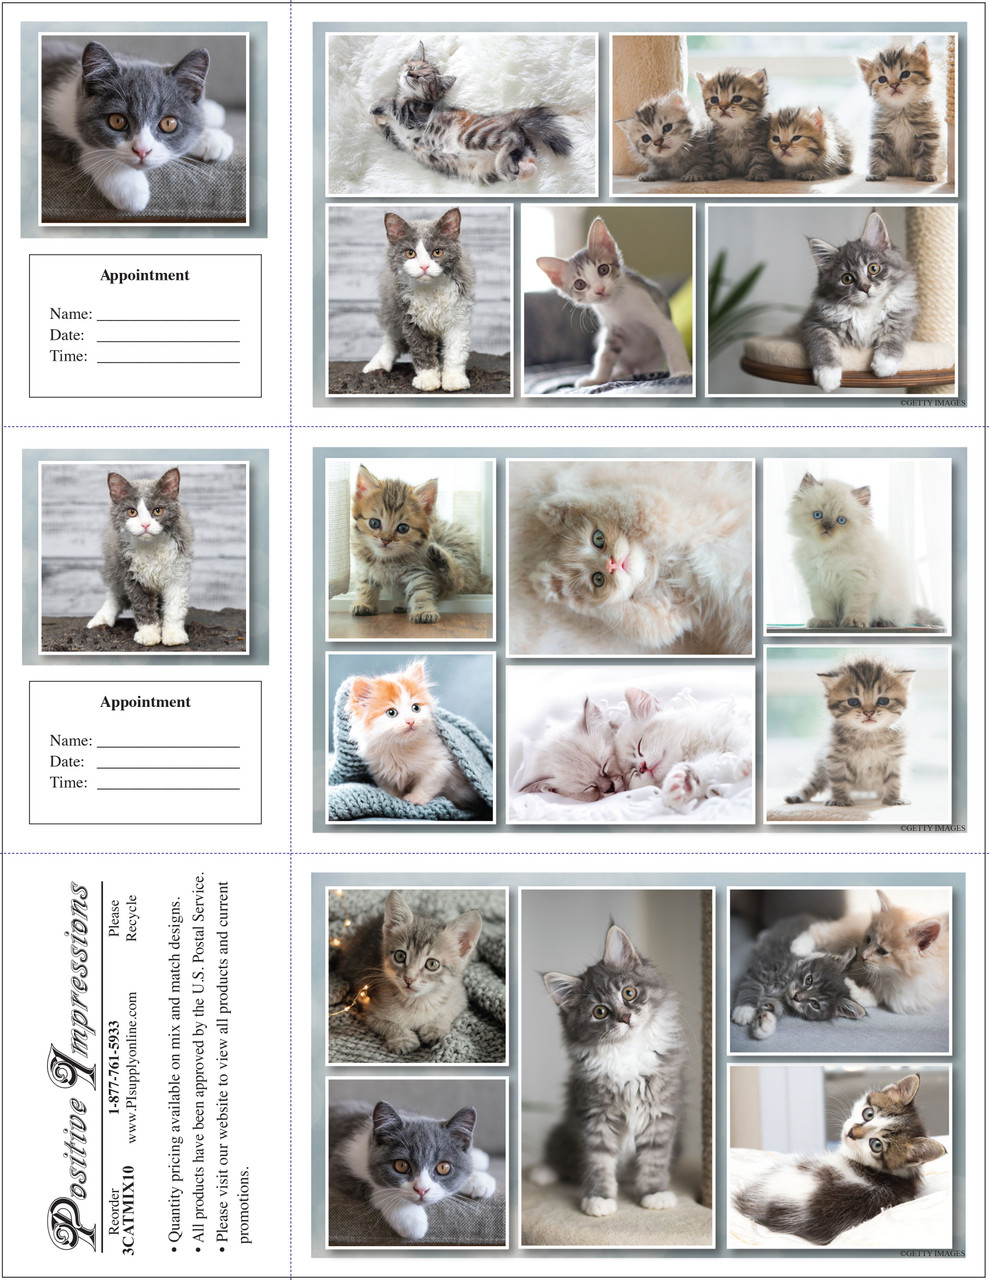 3CATMIX10 - 3 Up Reminder Cards